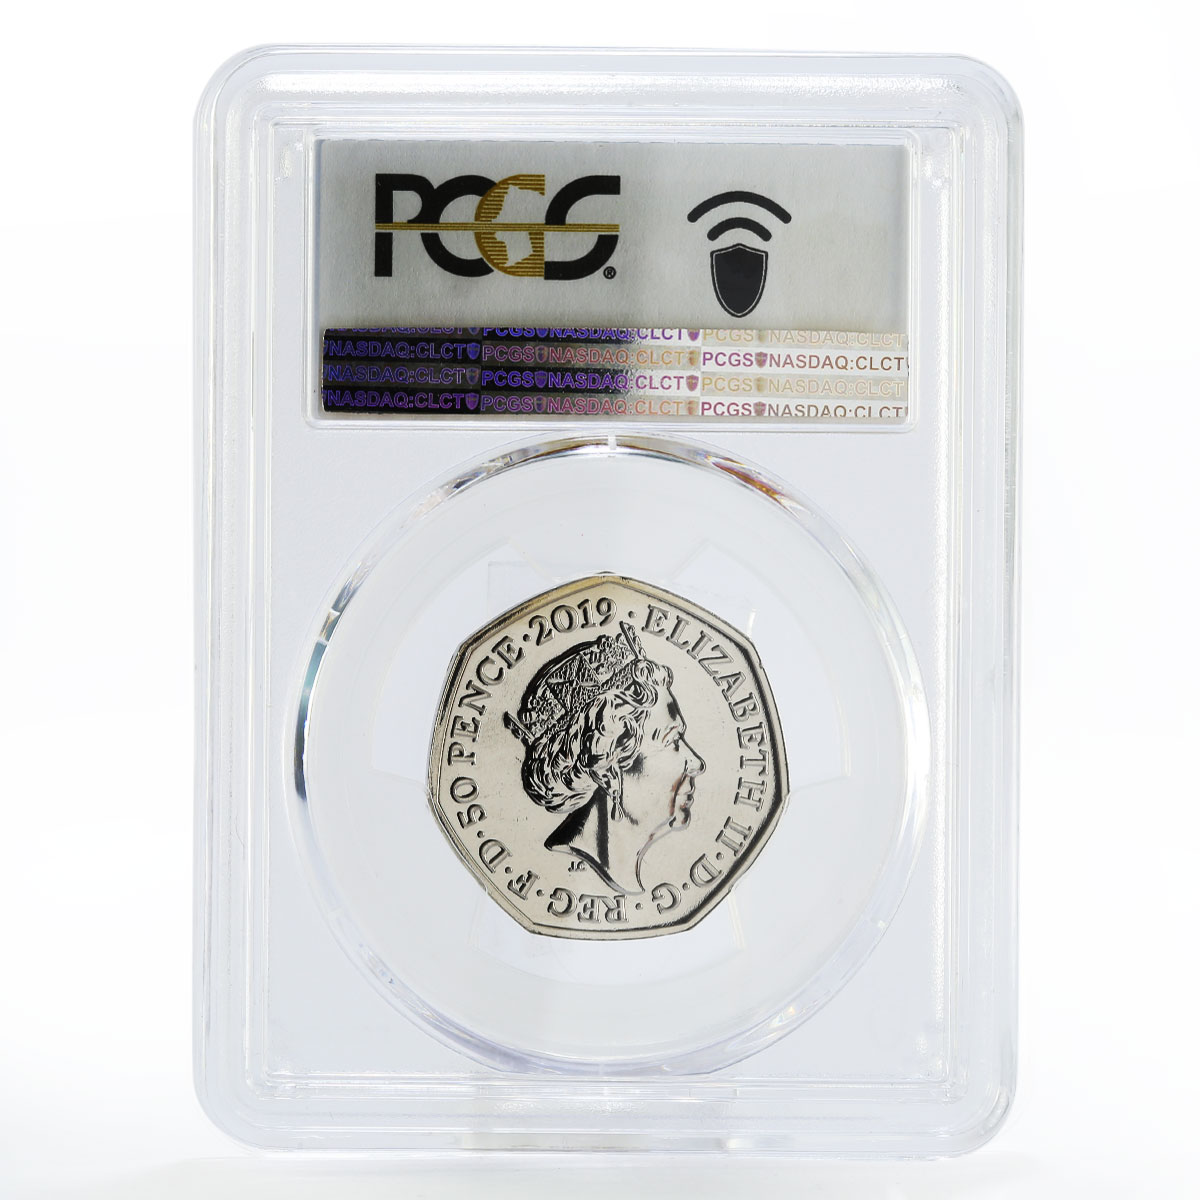 Britain 50 pence 250 Years of Kew Gardens MS67 PCGS reissued nickel coin 2019